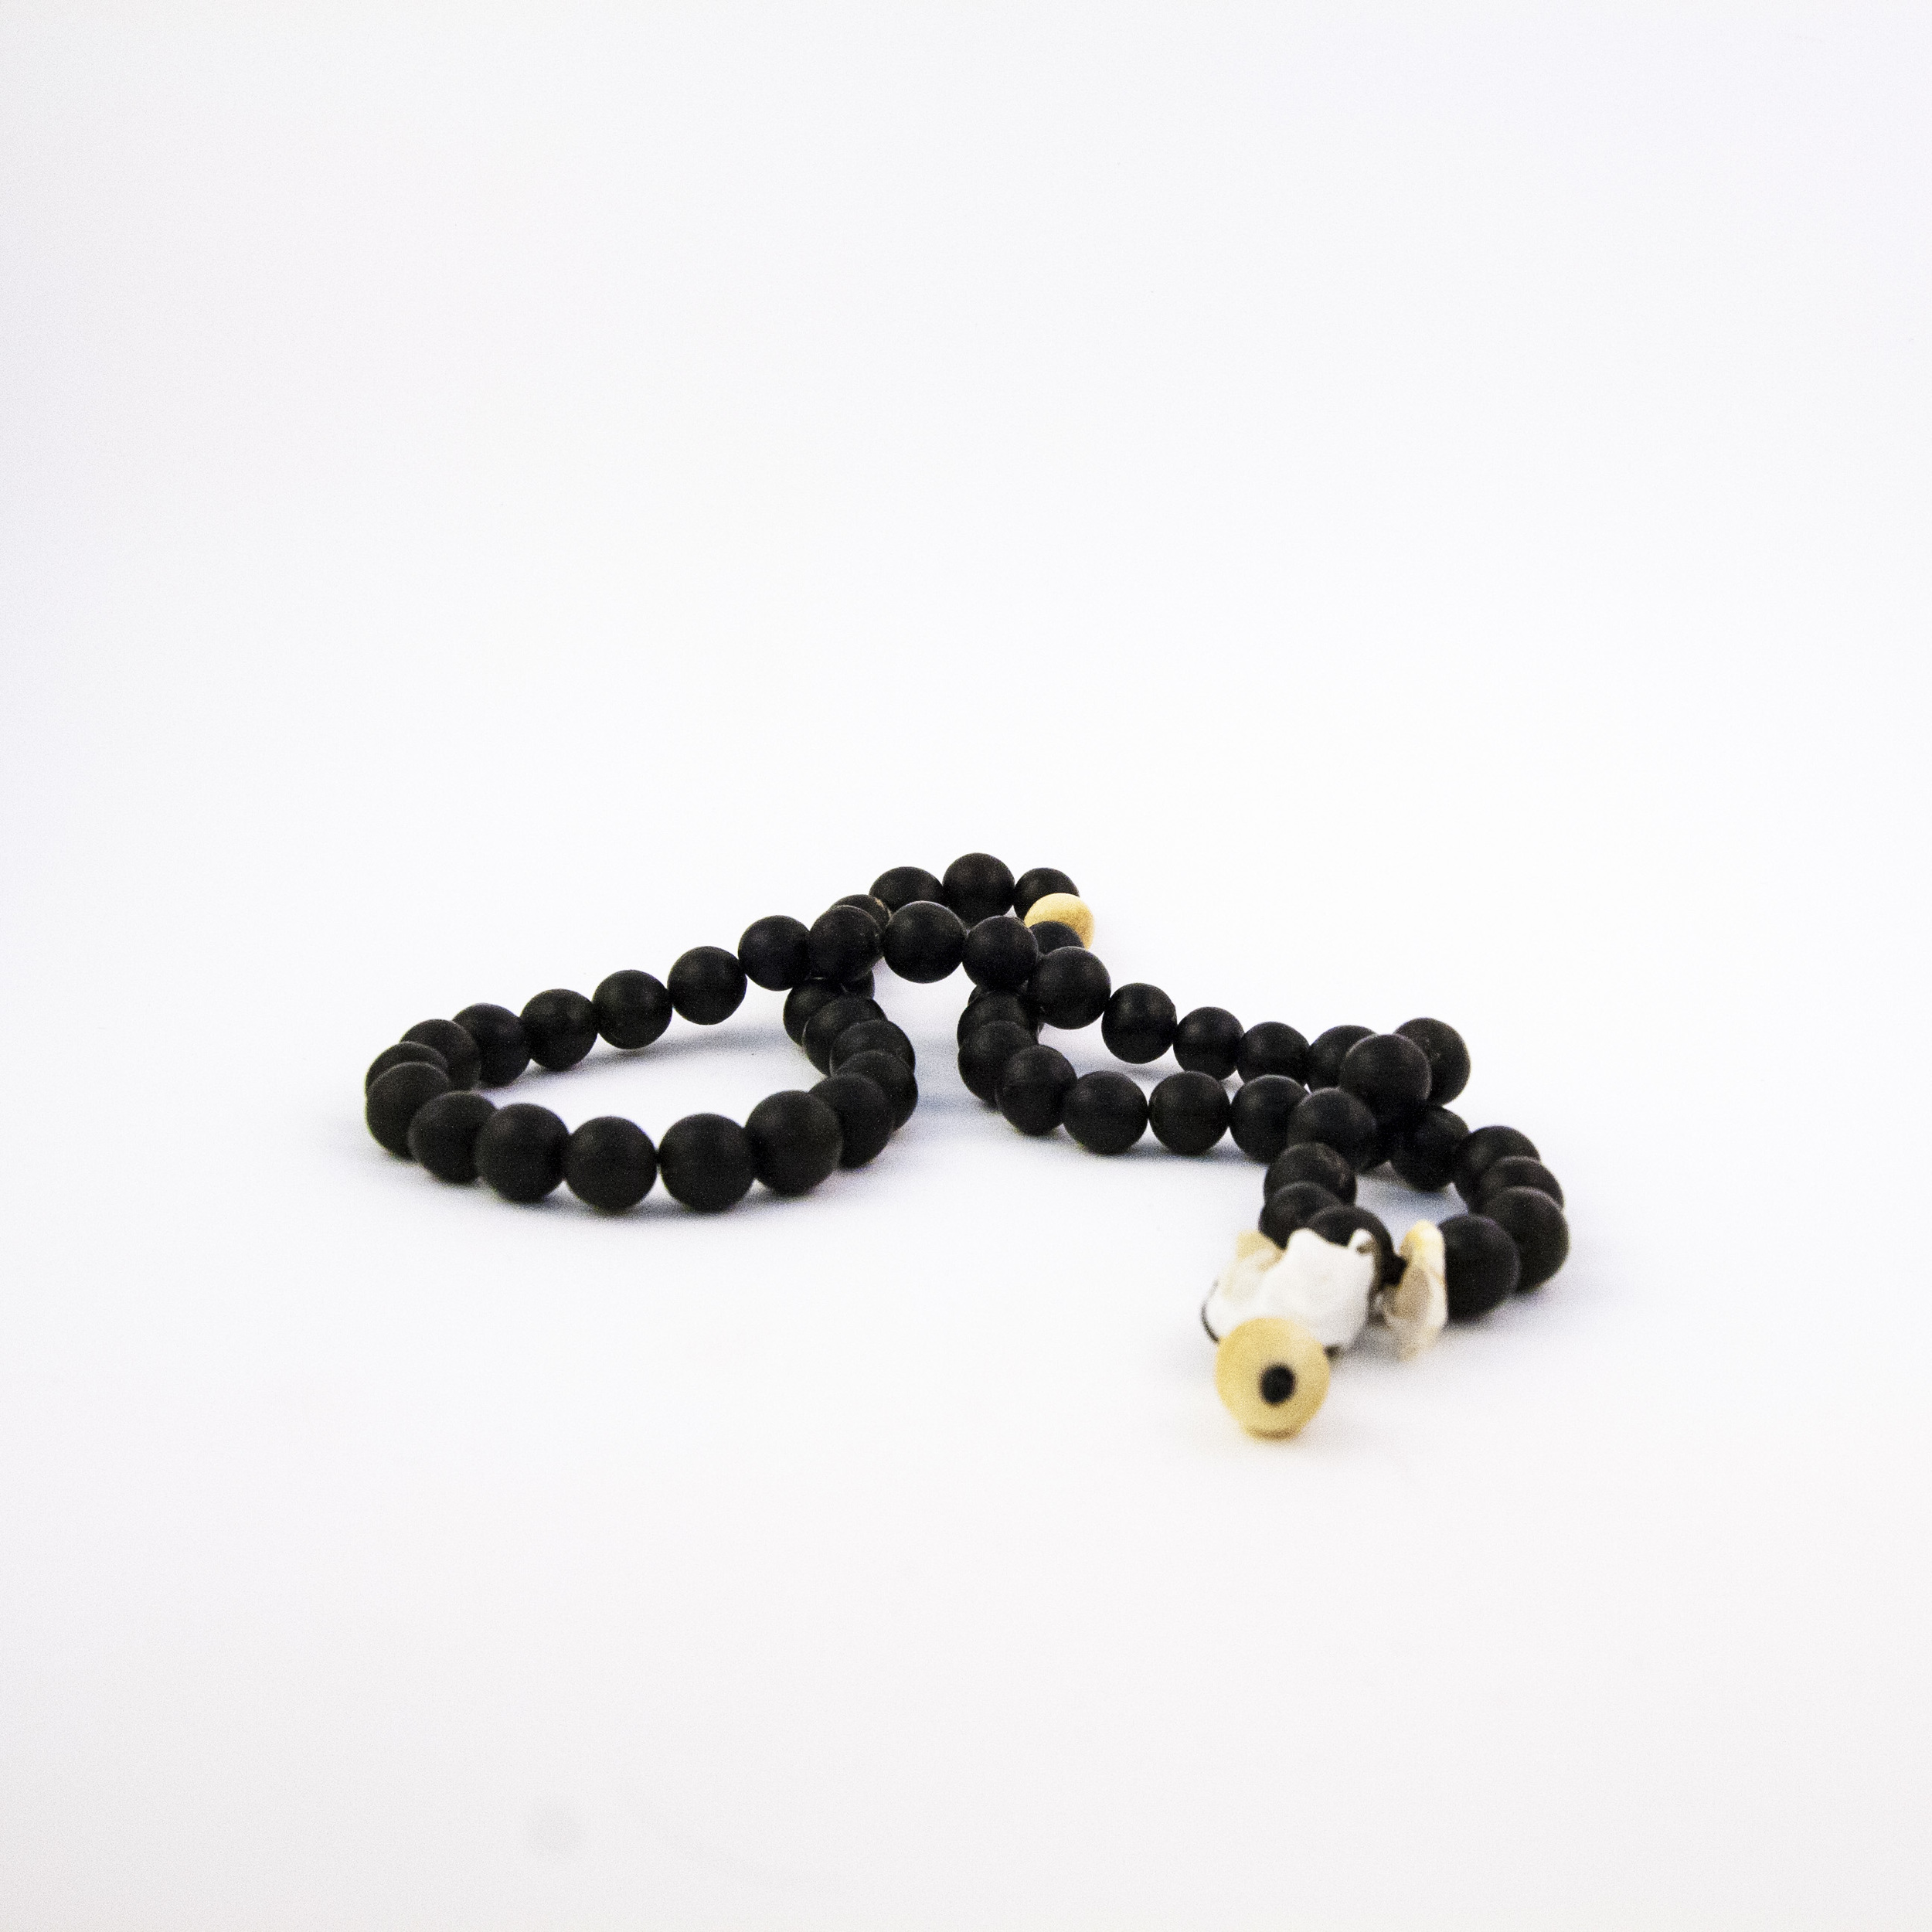 Momotombo Worry Beads - Selected Beads, Seeds and Shell.